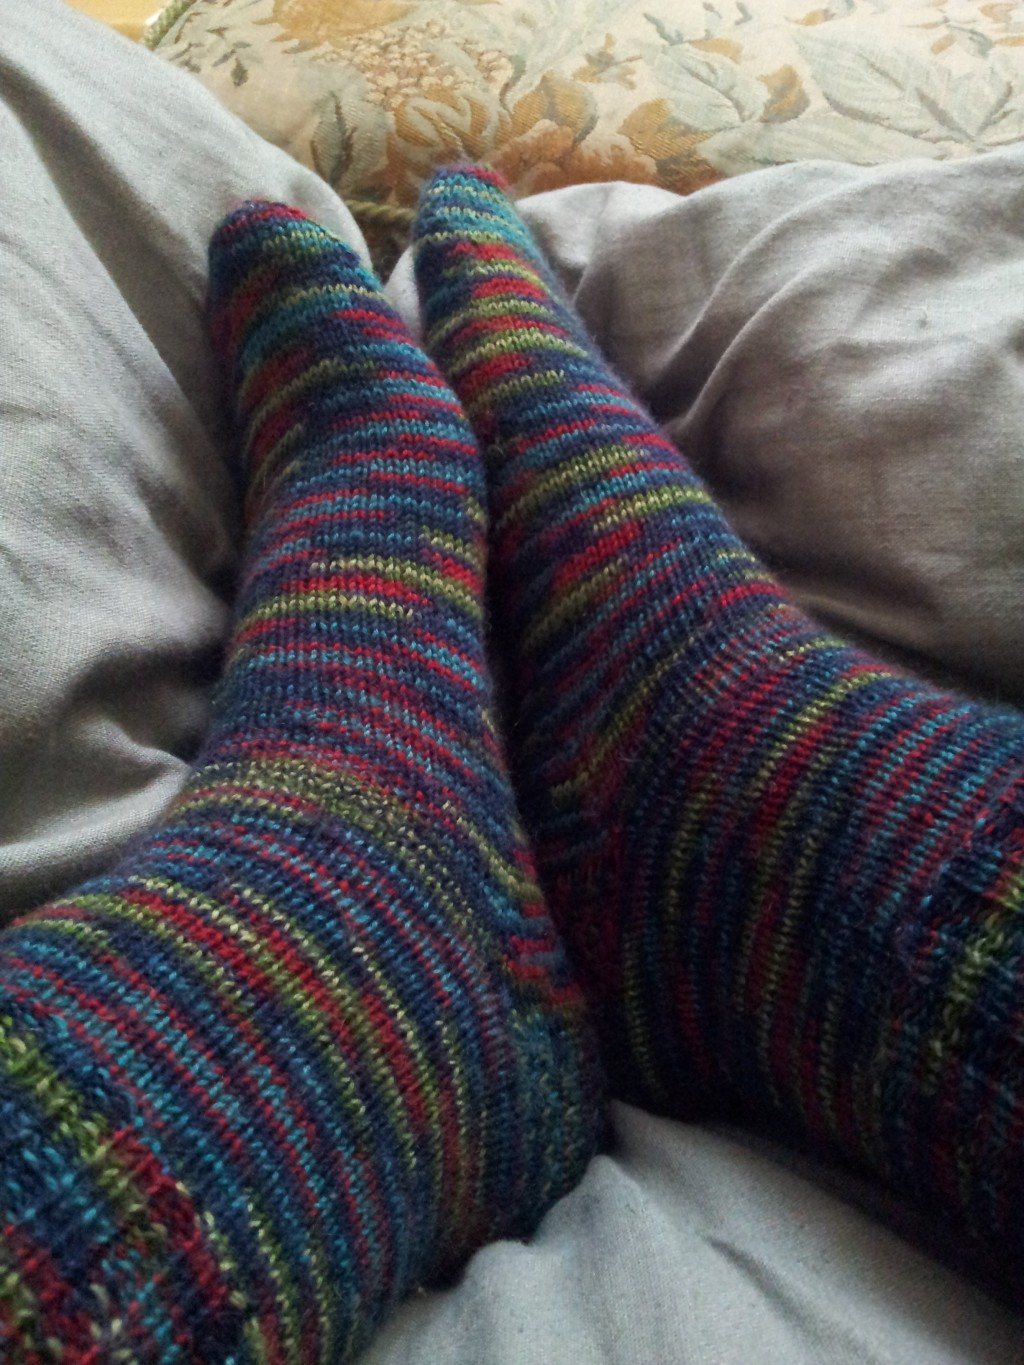 Knitting Sock Patterns For Beginners Why Knit Socks Sock Knitting For Beginners Where To Find The